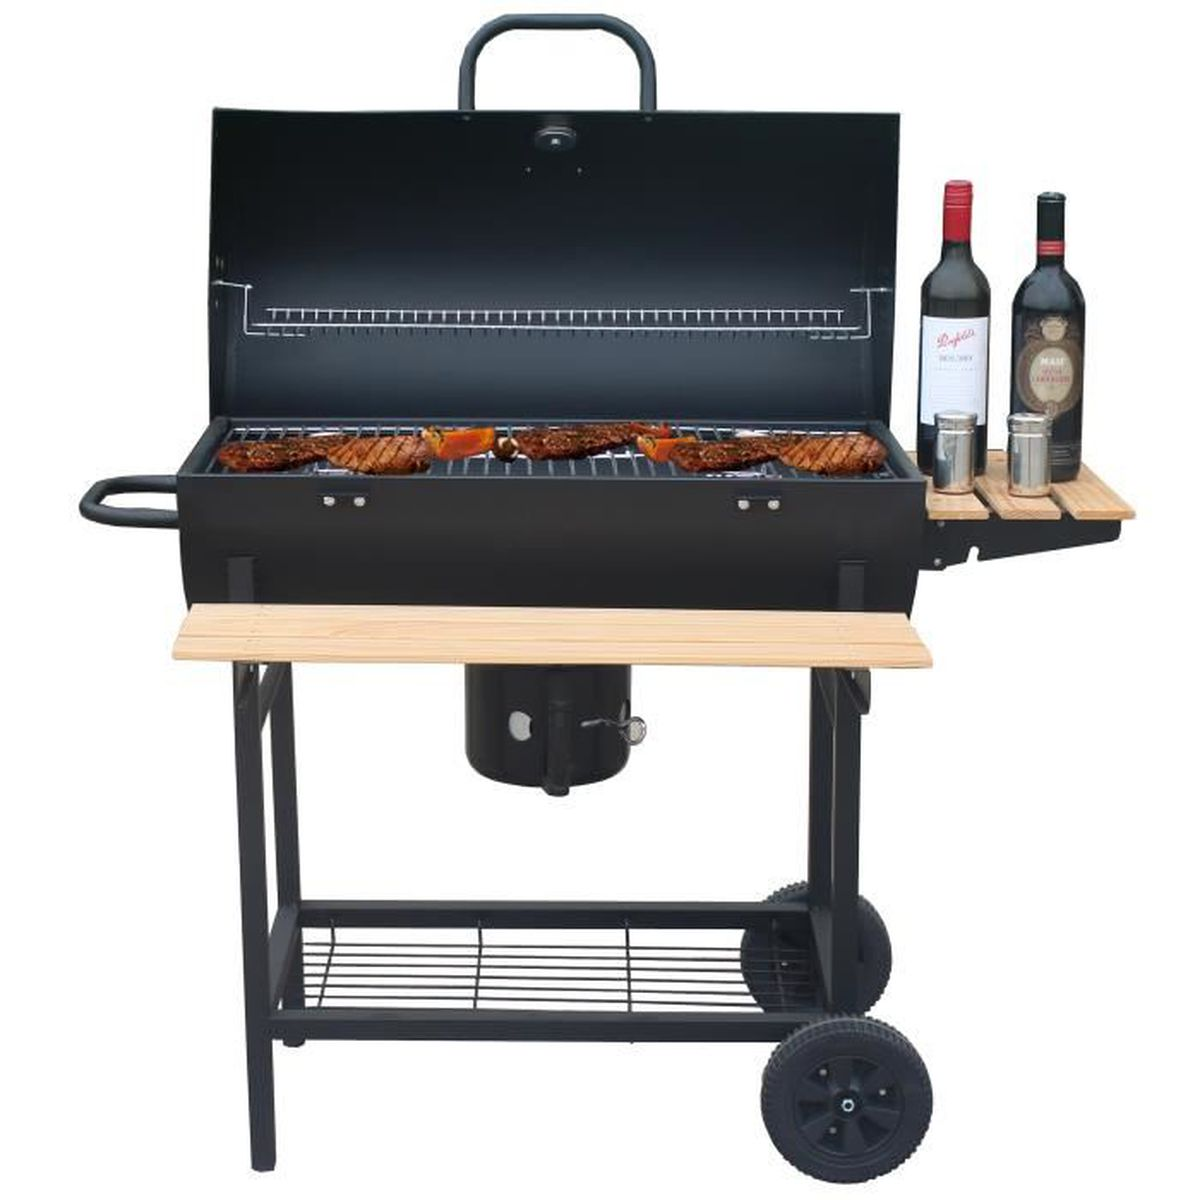 BARBECUE Barbecue à charbon 70x35cm avec chariot - Robby -